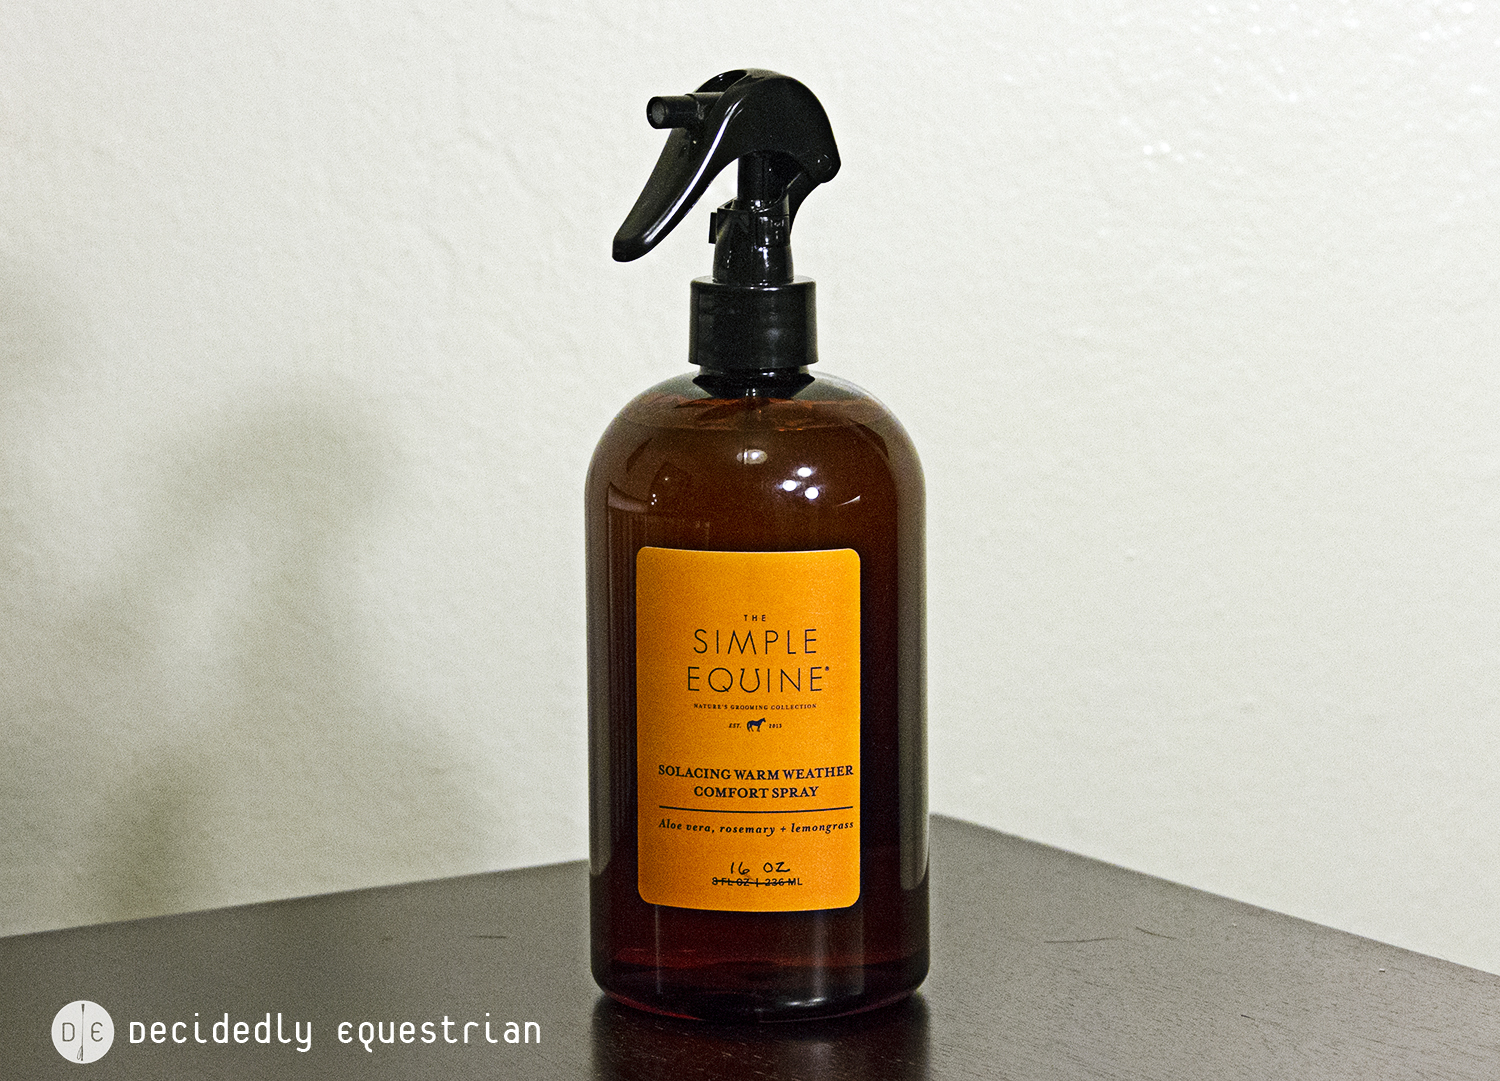 The Simple Equine's Solacing Warm Weather Comfort Spray Review